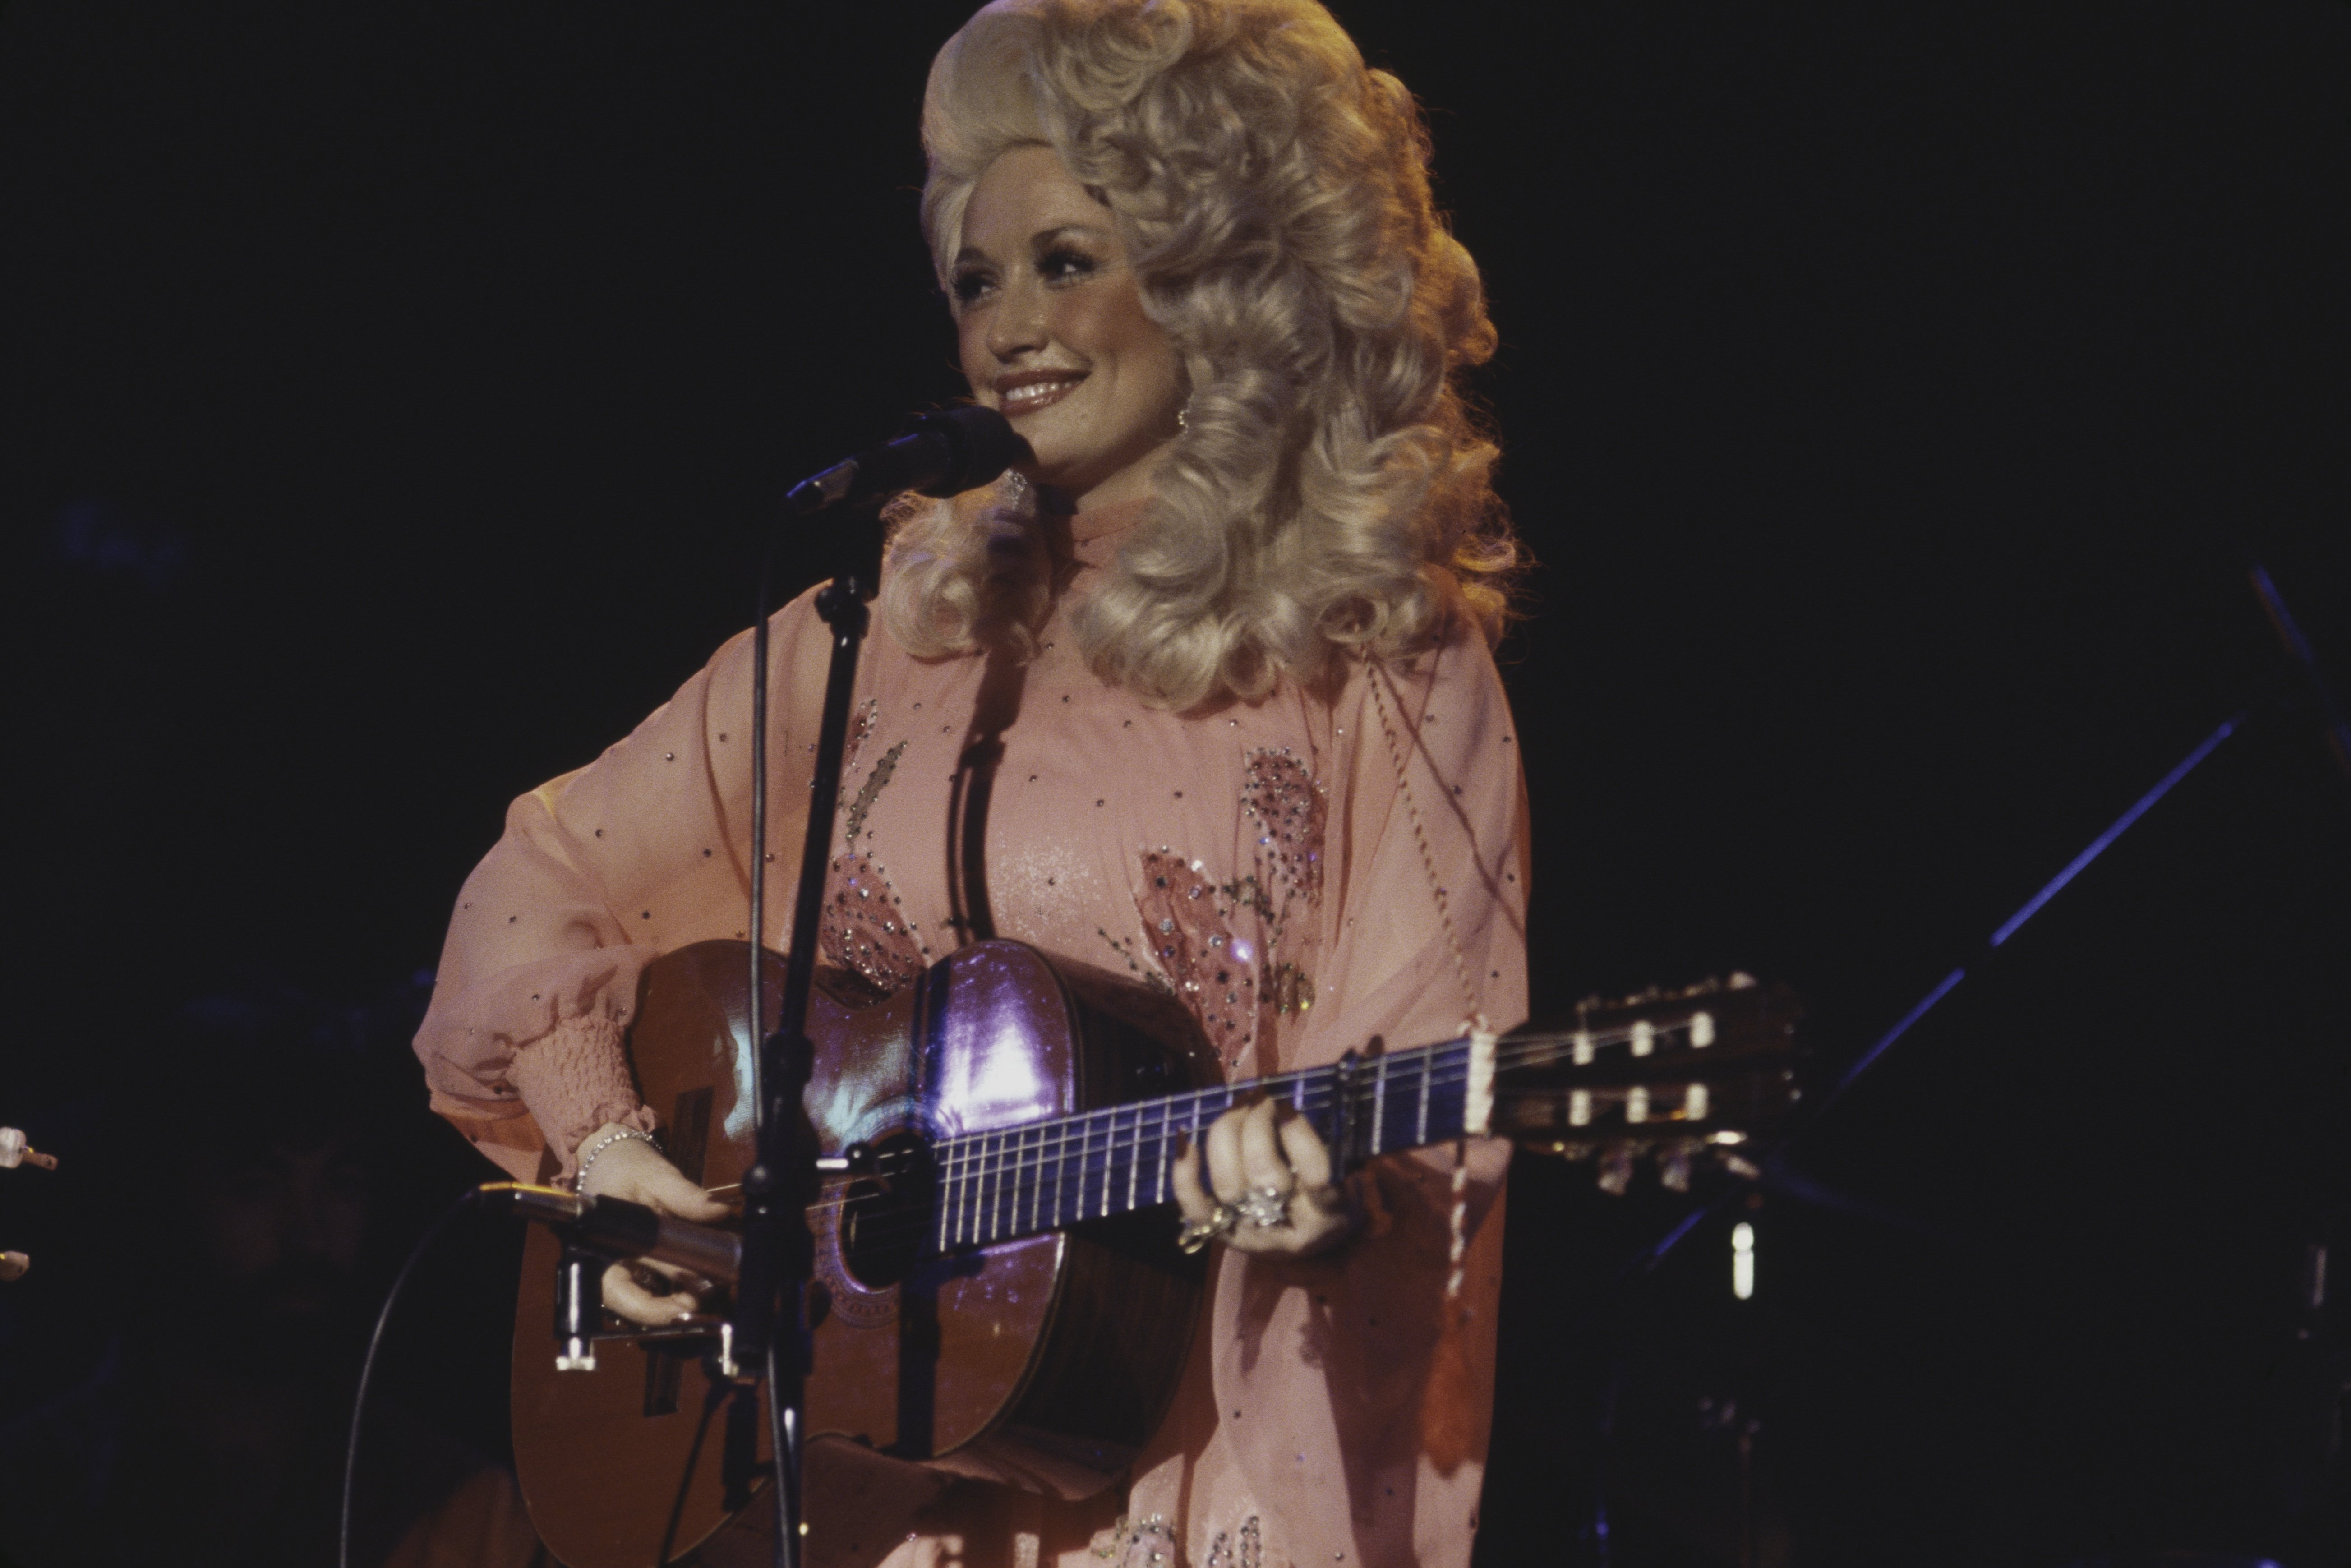 Dolly Parton performs live on stage at the Bottom Line club in New York on 11th May 1977 | Photo: GettyImages